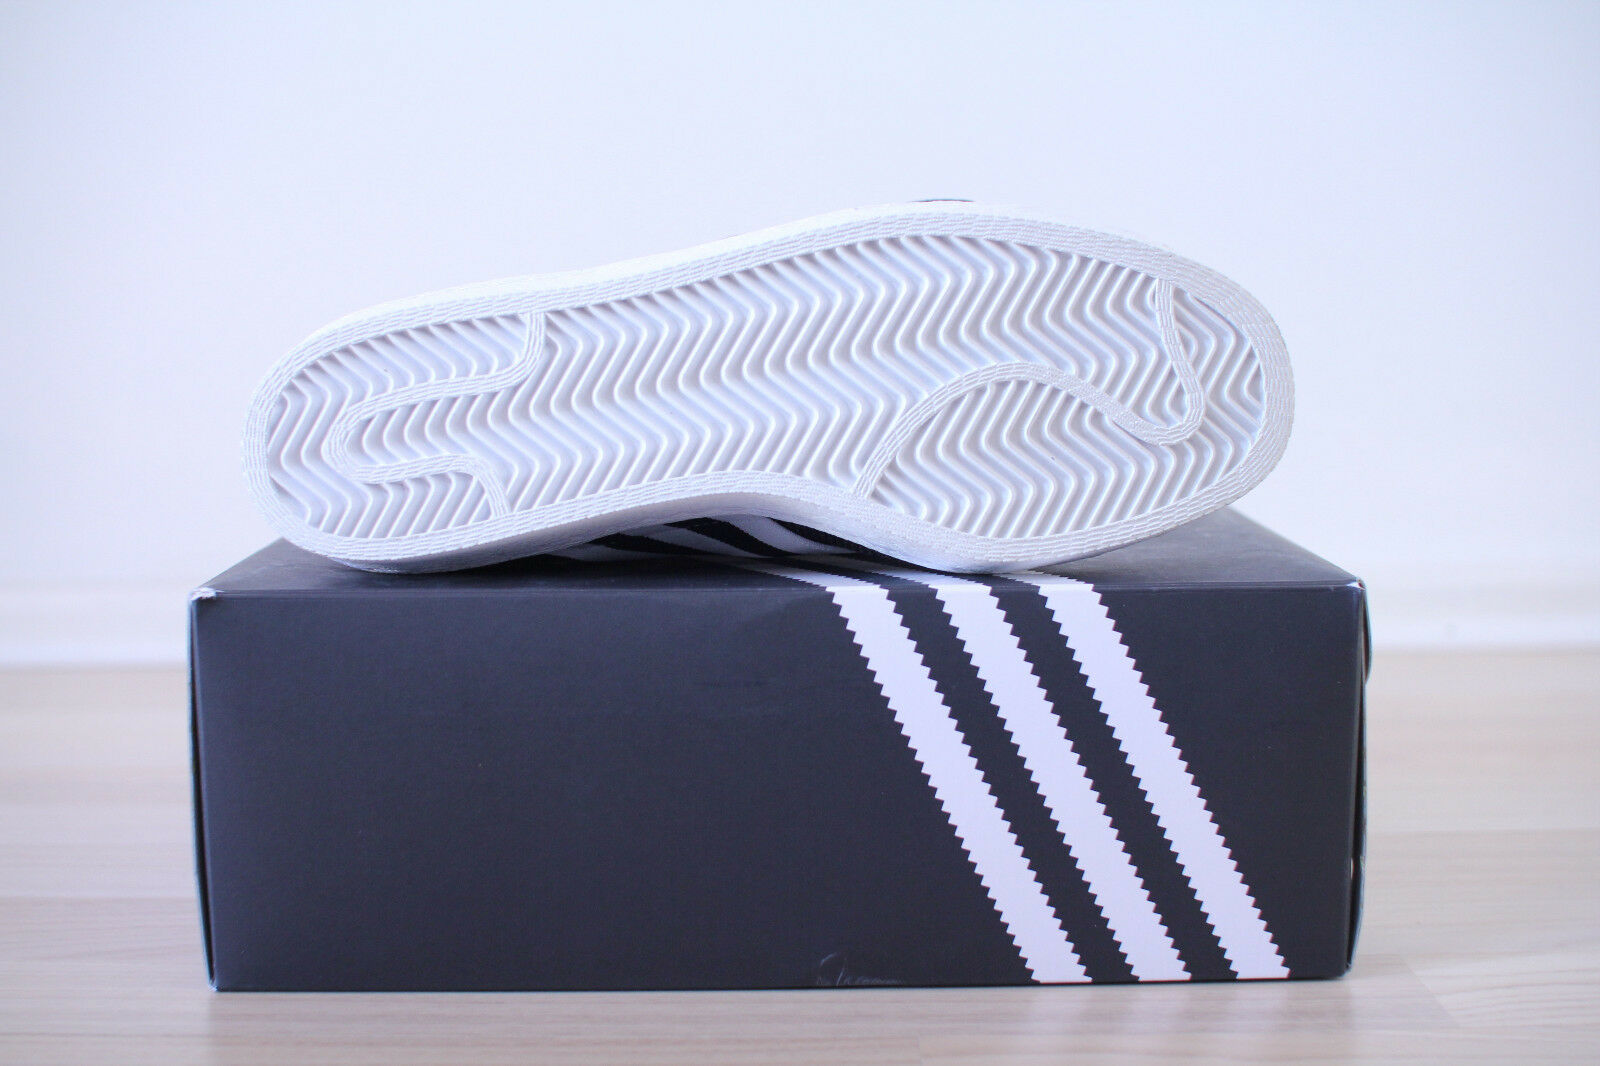 Adidas White Mountaineering Superstar Slip On Schwarz Gr. 41,42,43,44,45,46 NEU